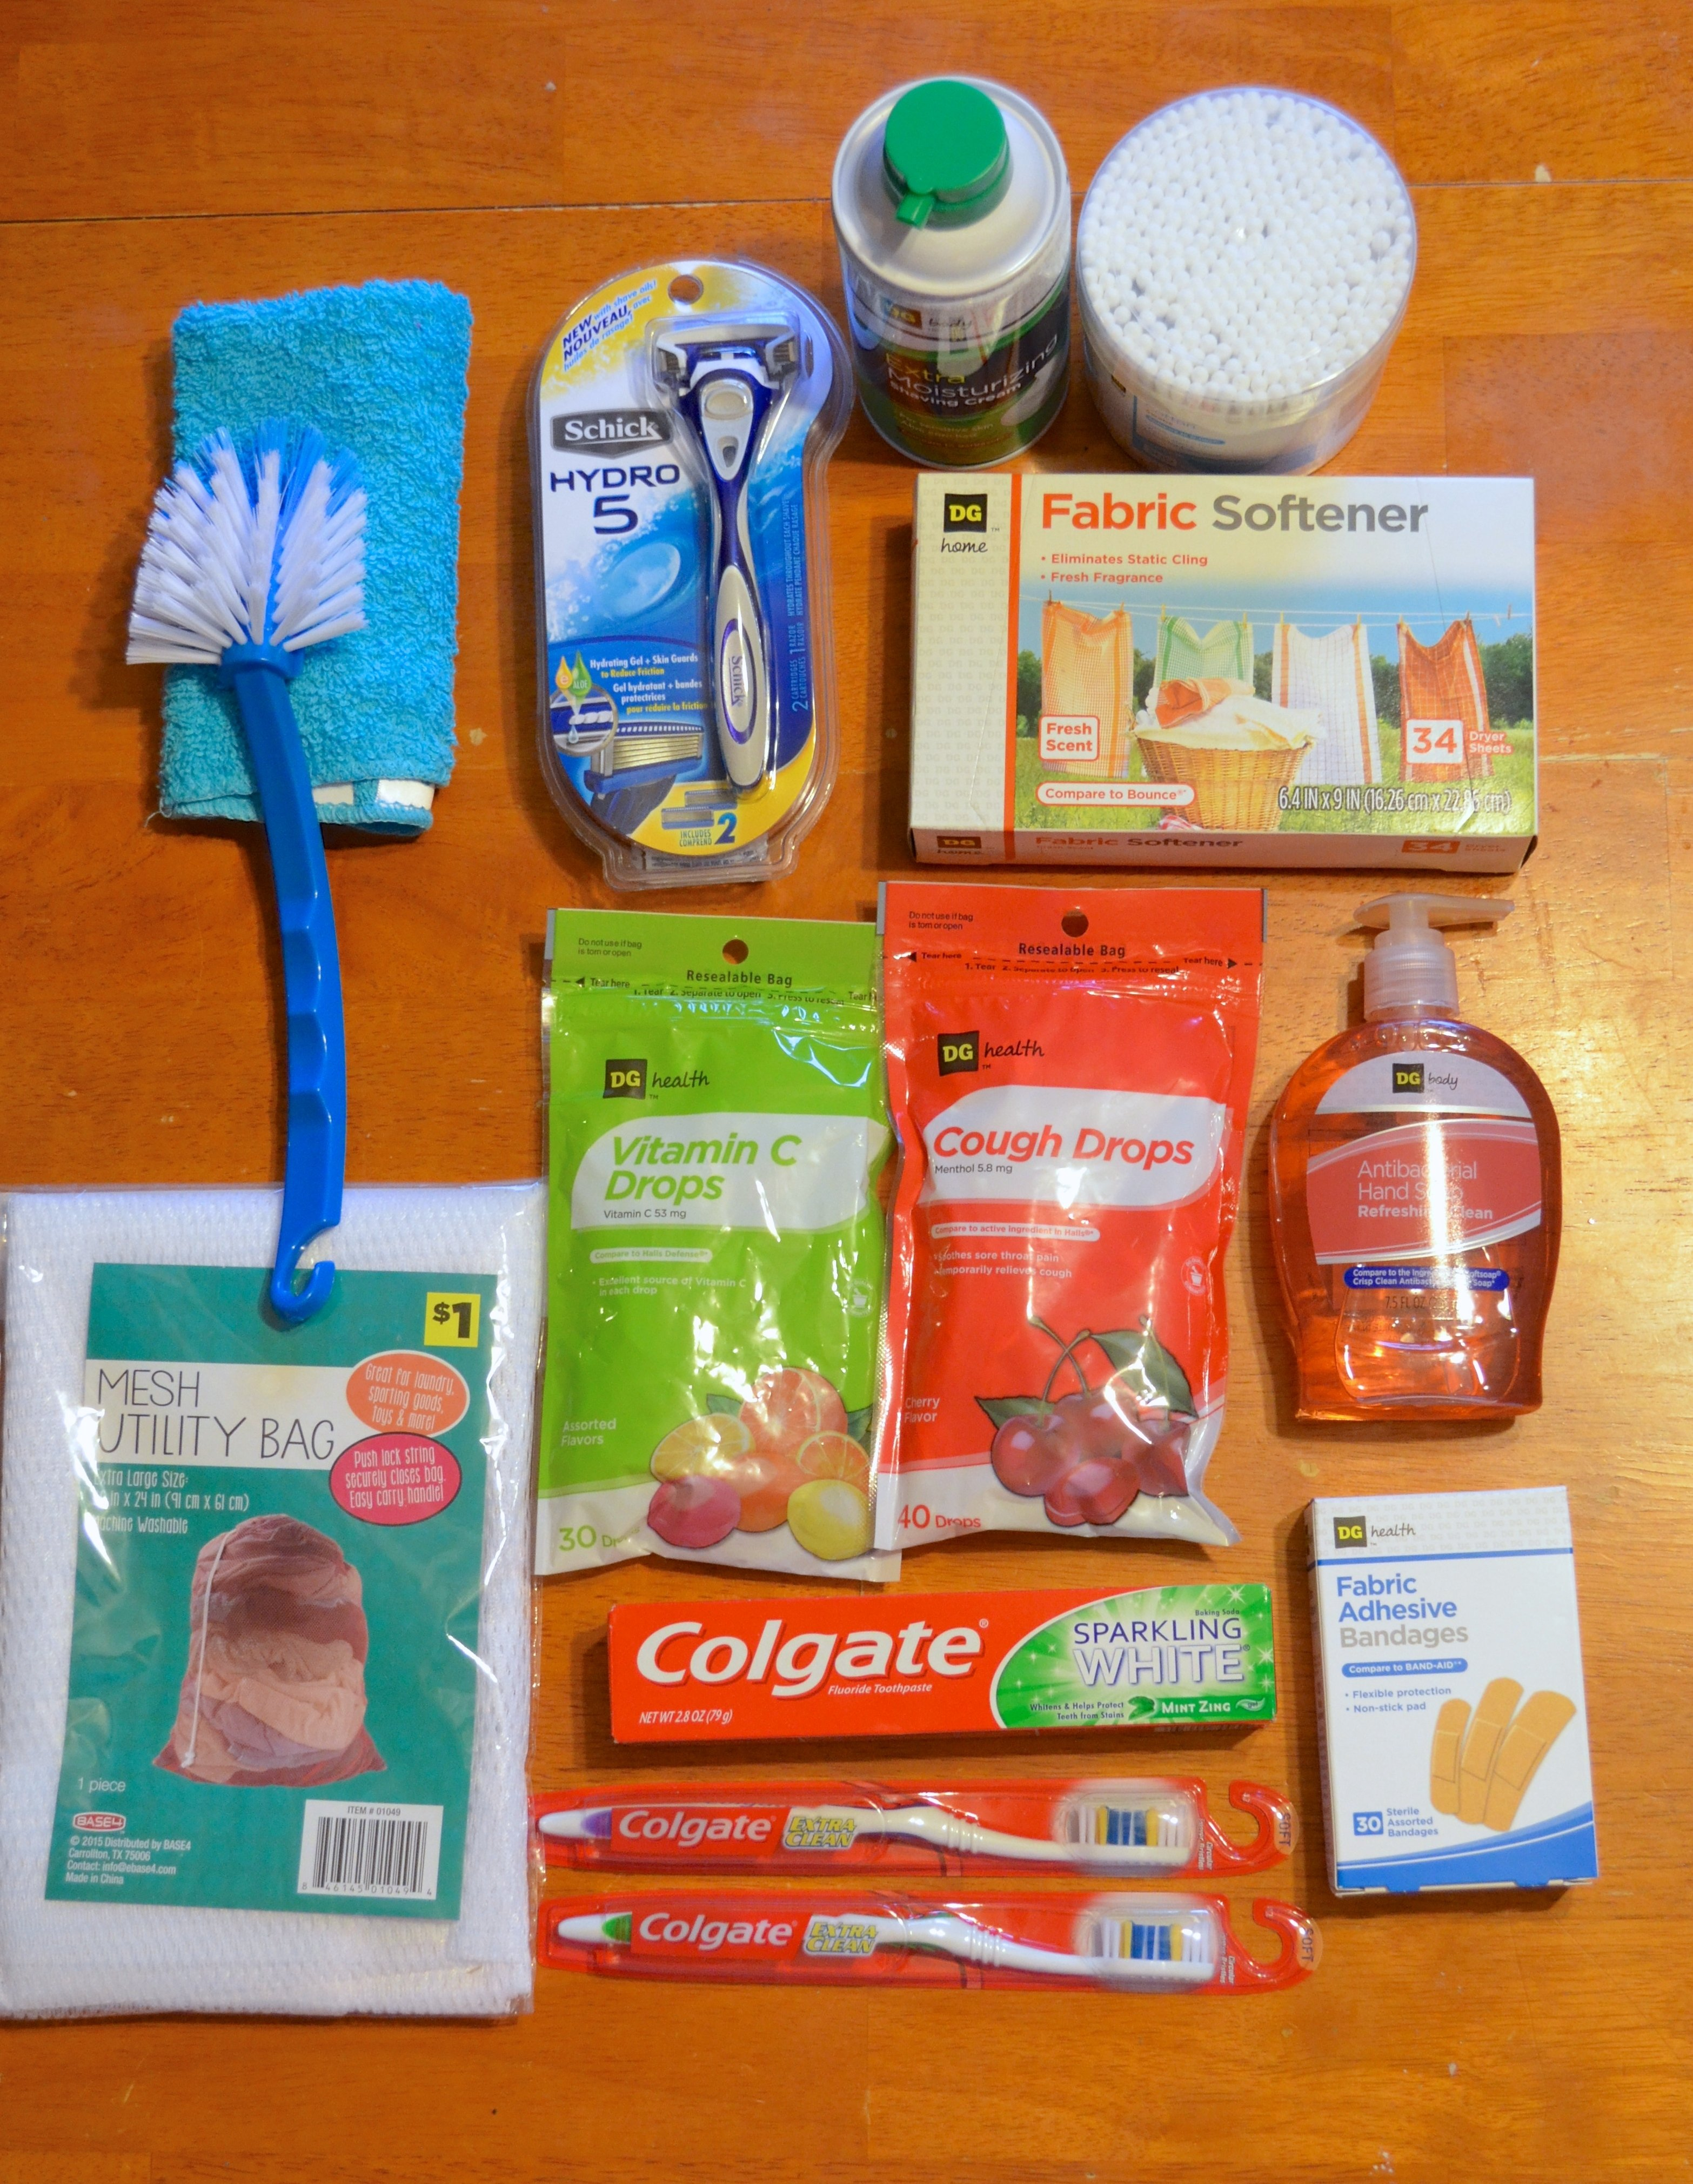 10 Attractive Final Exam Care Package Ideas college care package ideas for guys with tips to buy for your 1 2021